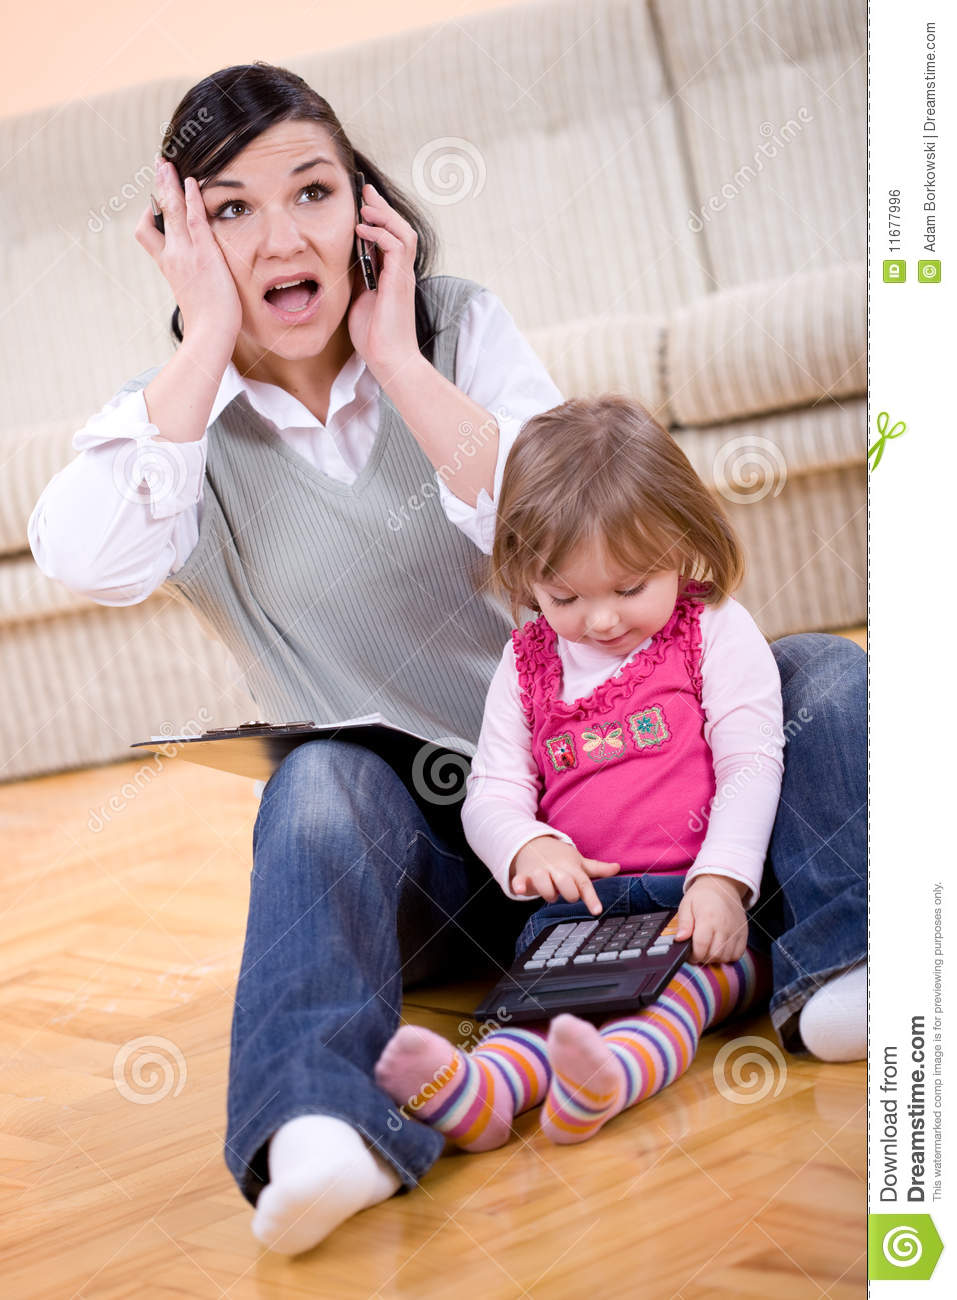 Working and parenting